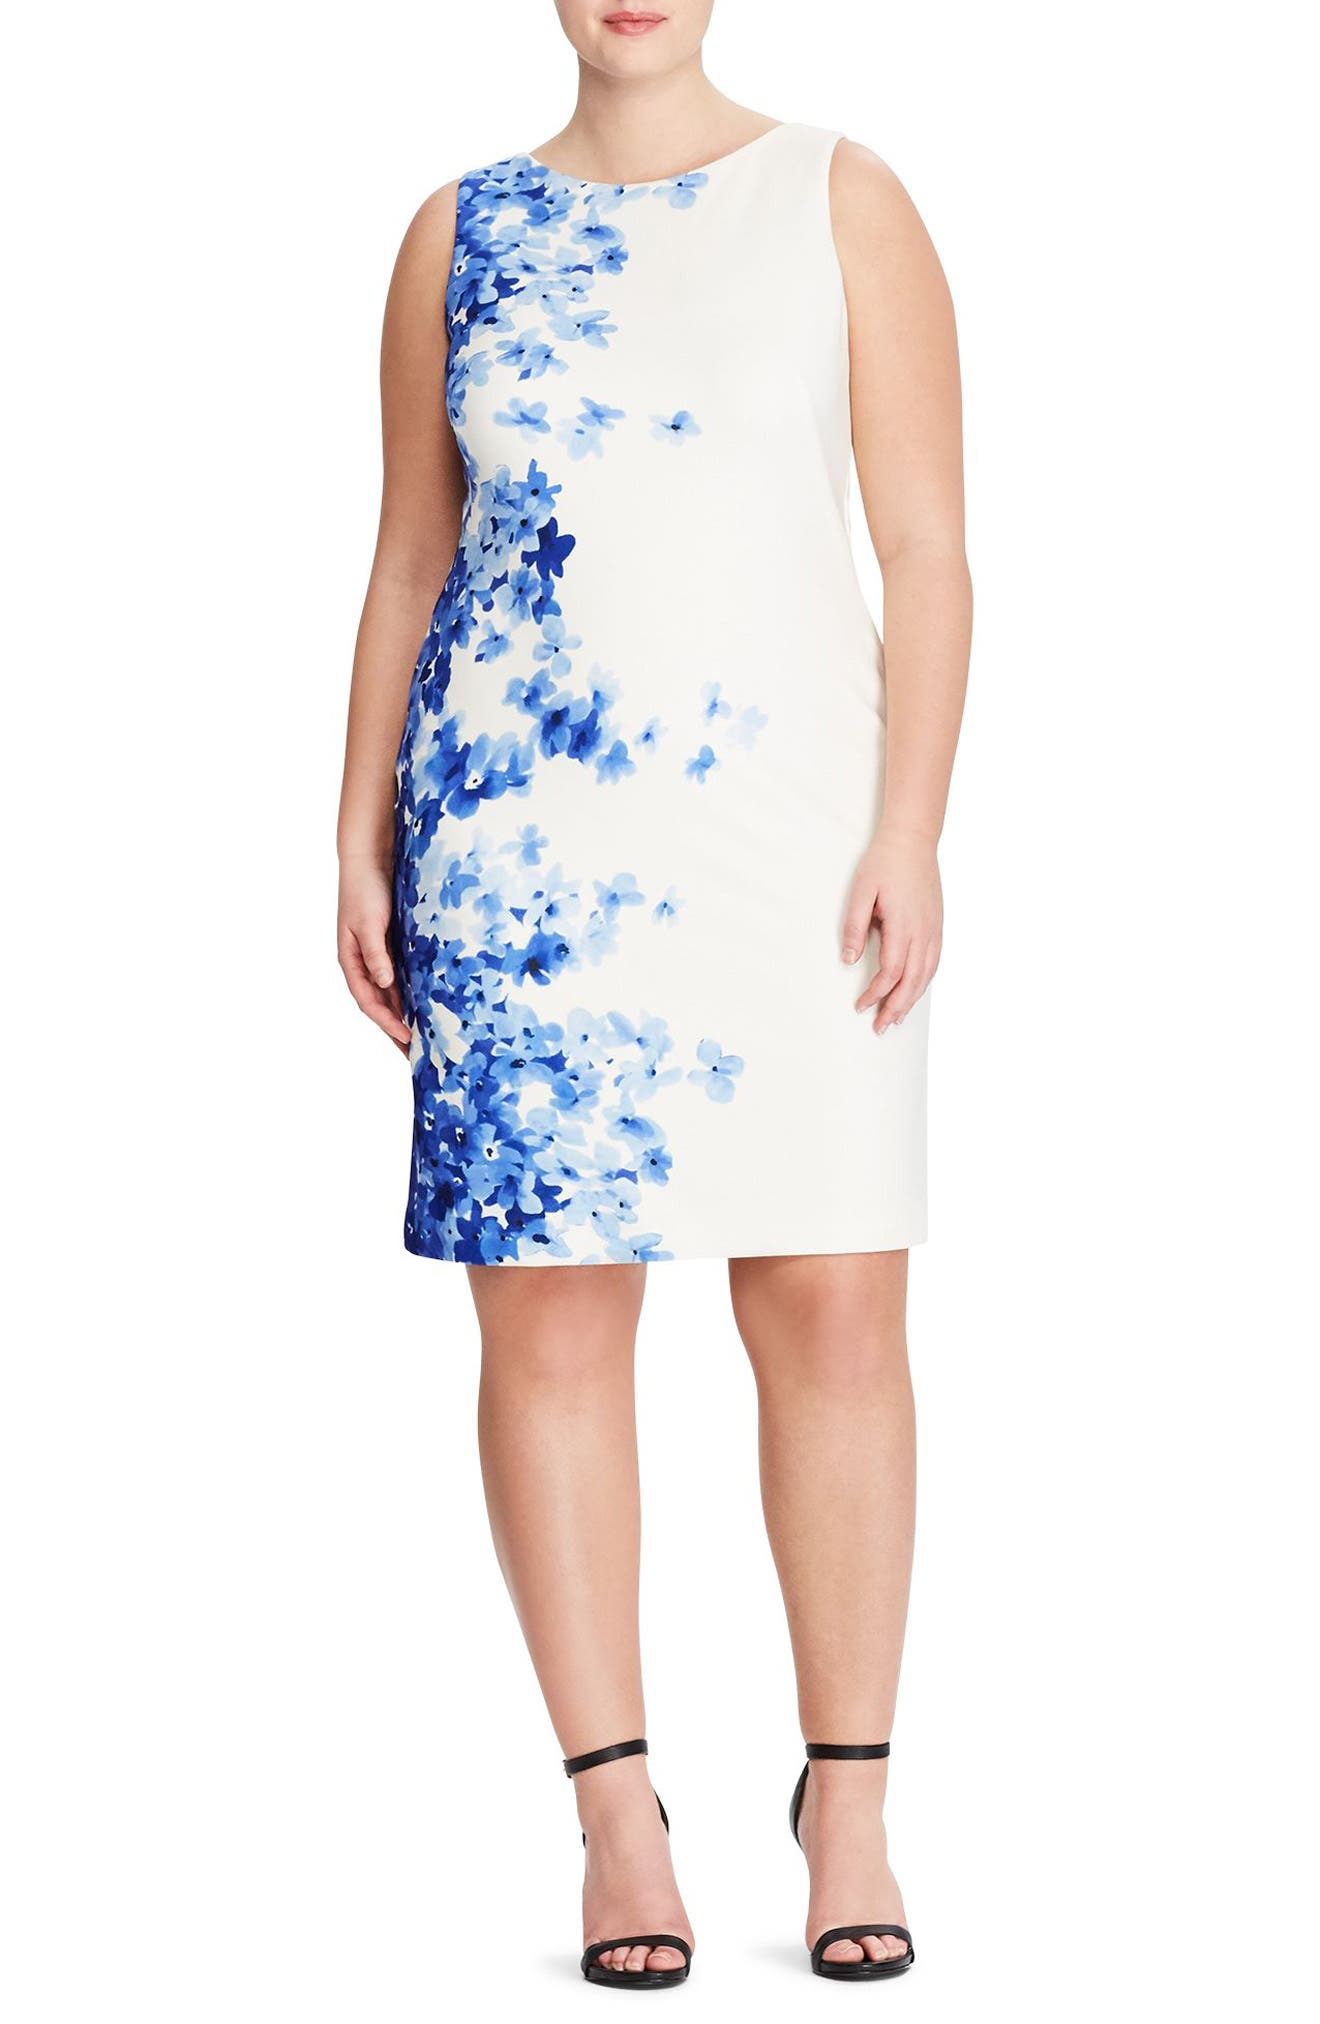 Toralina Caspian Sea Border Sheath Dress,                         Main,                         color, Col. Cream-Blue-Multi